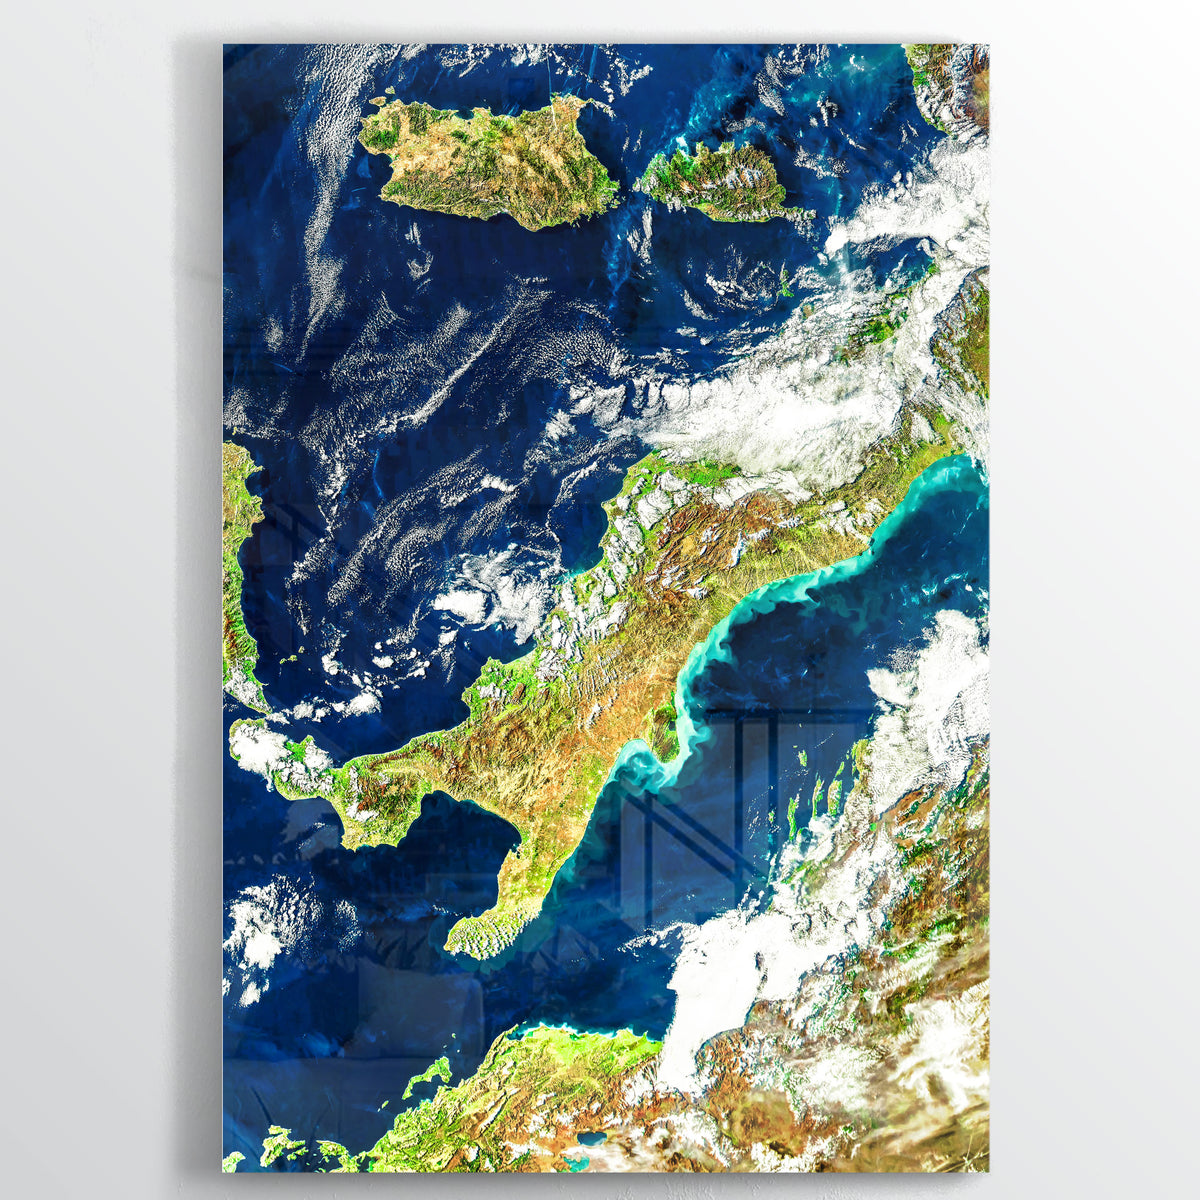 Italy Earth Photography - Floating Acrylic Art